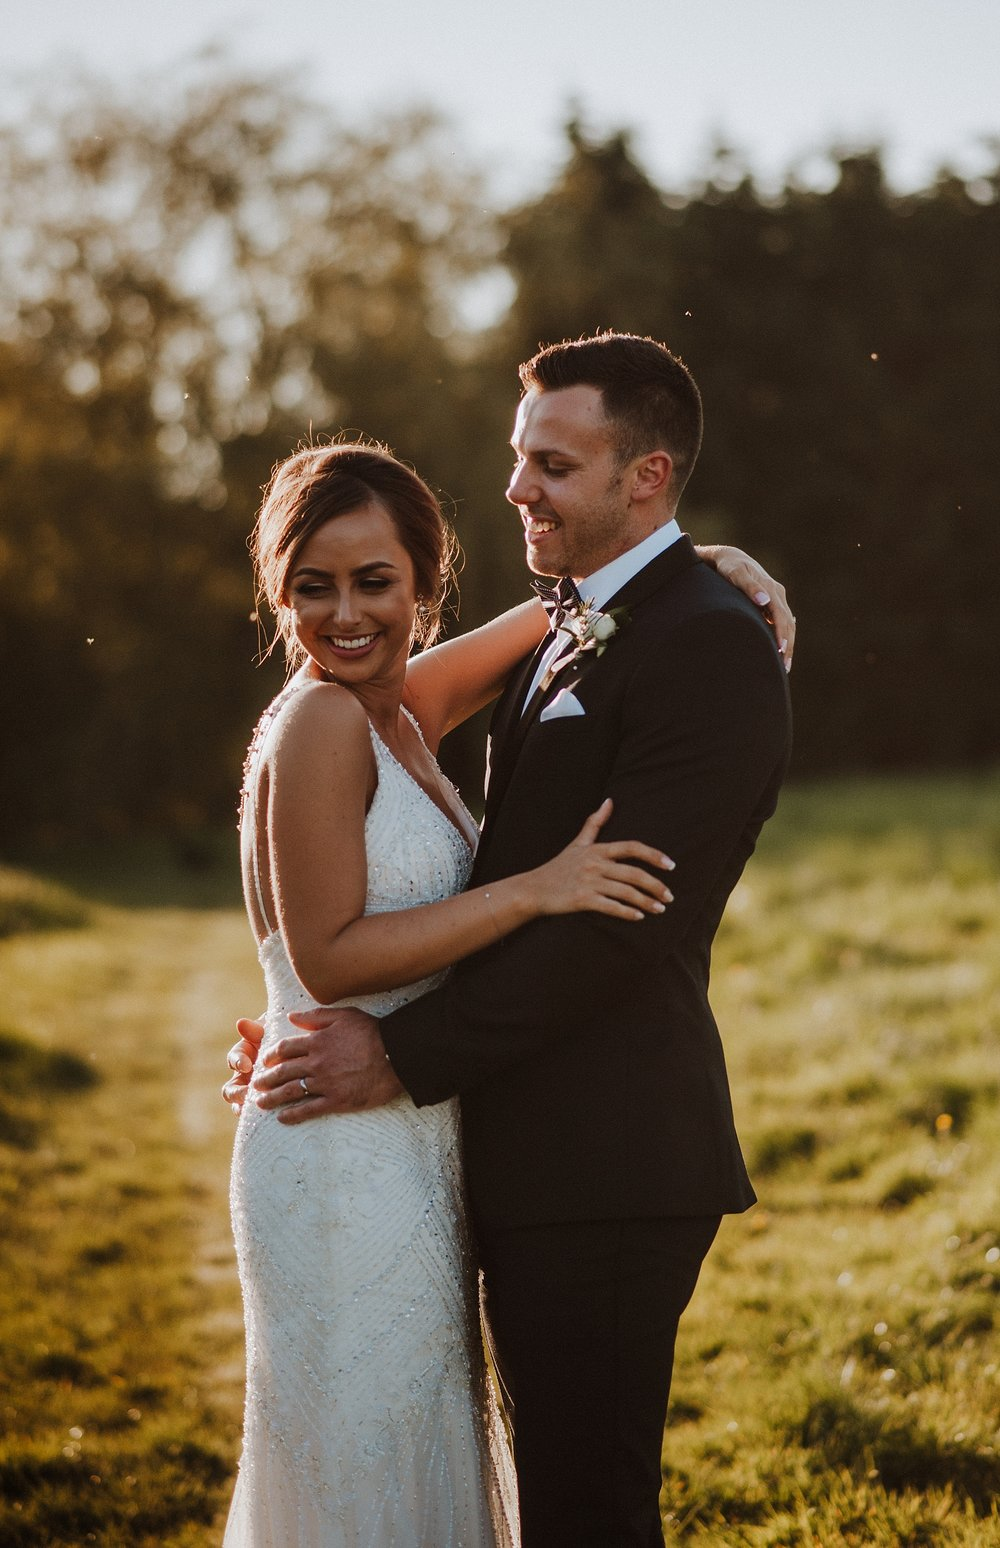 wedding photos at elvey farm kent